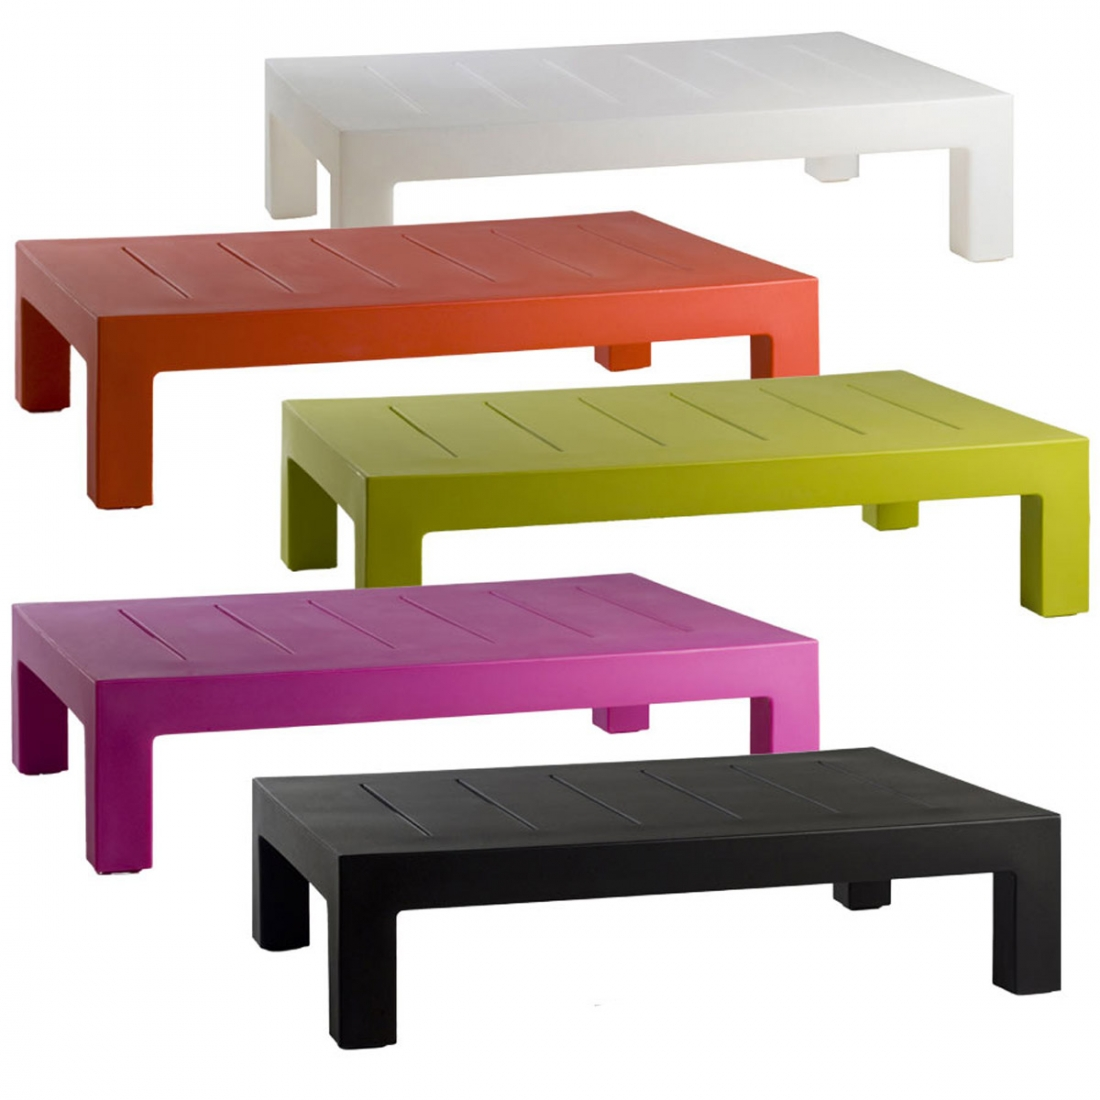 Table basse design d ext rieur jut par vondom for Table de jardin plastique pas cher